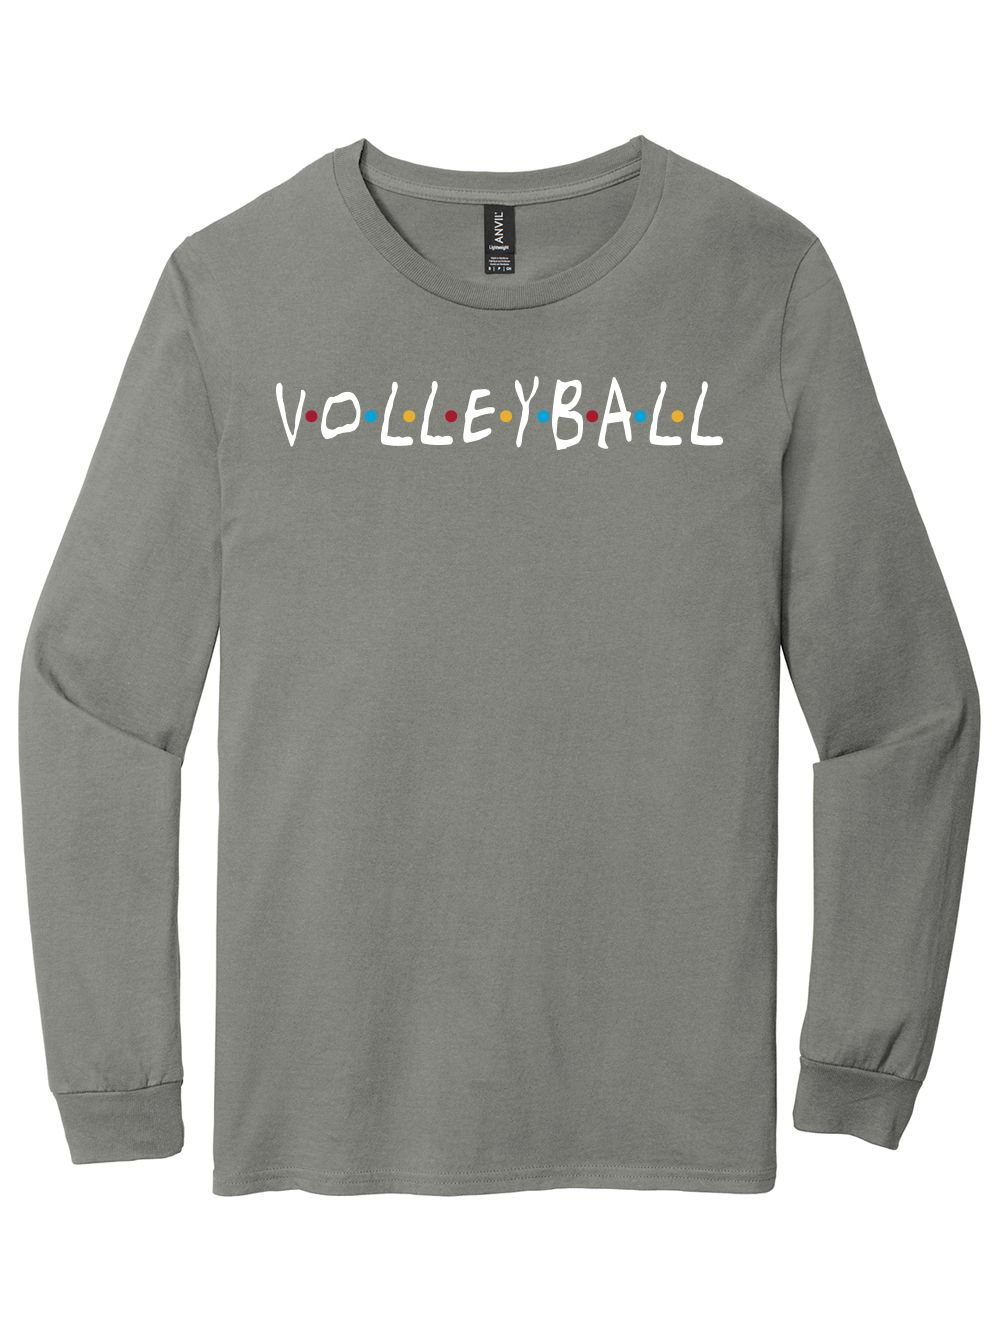 Friends Long Sleeve Shirt Midwest Volleyball Warehouse Long Sleeve Shirts Long Sleeve Hoodie Cropped Hoodie